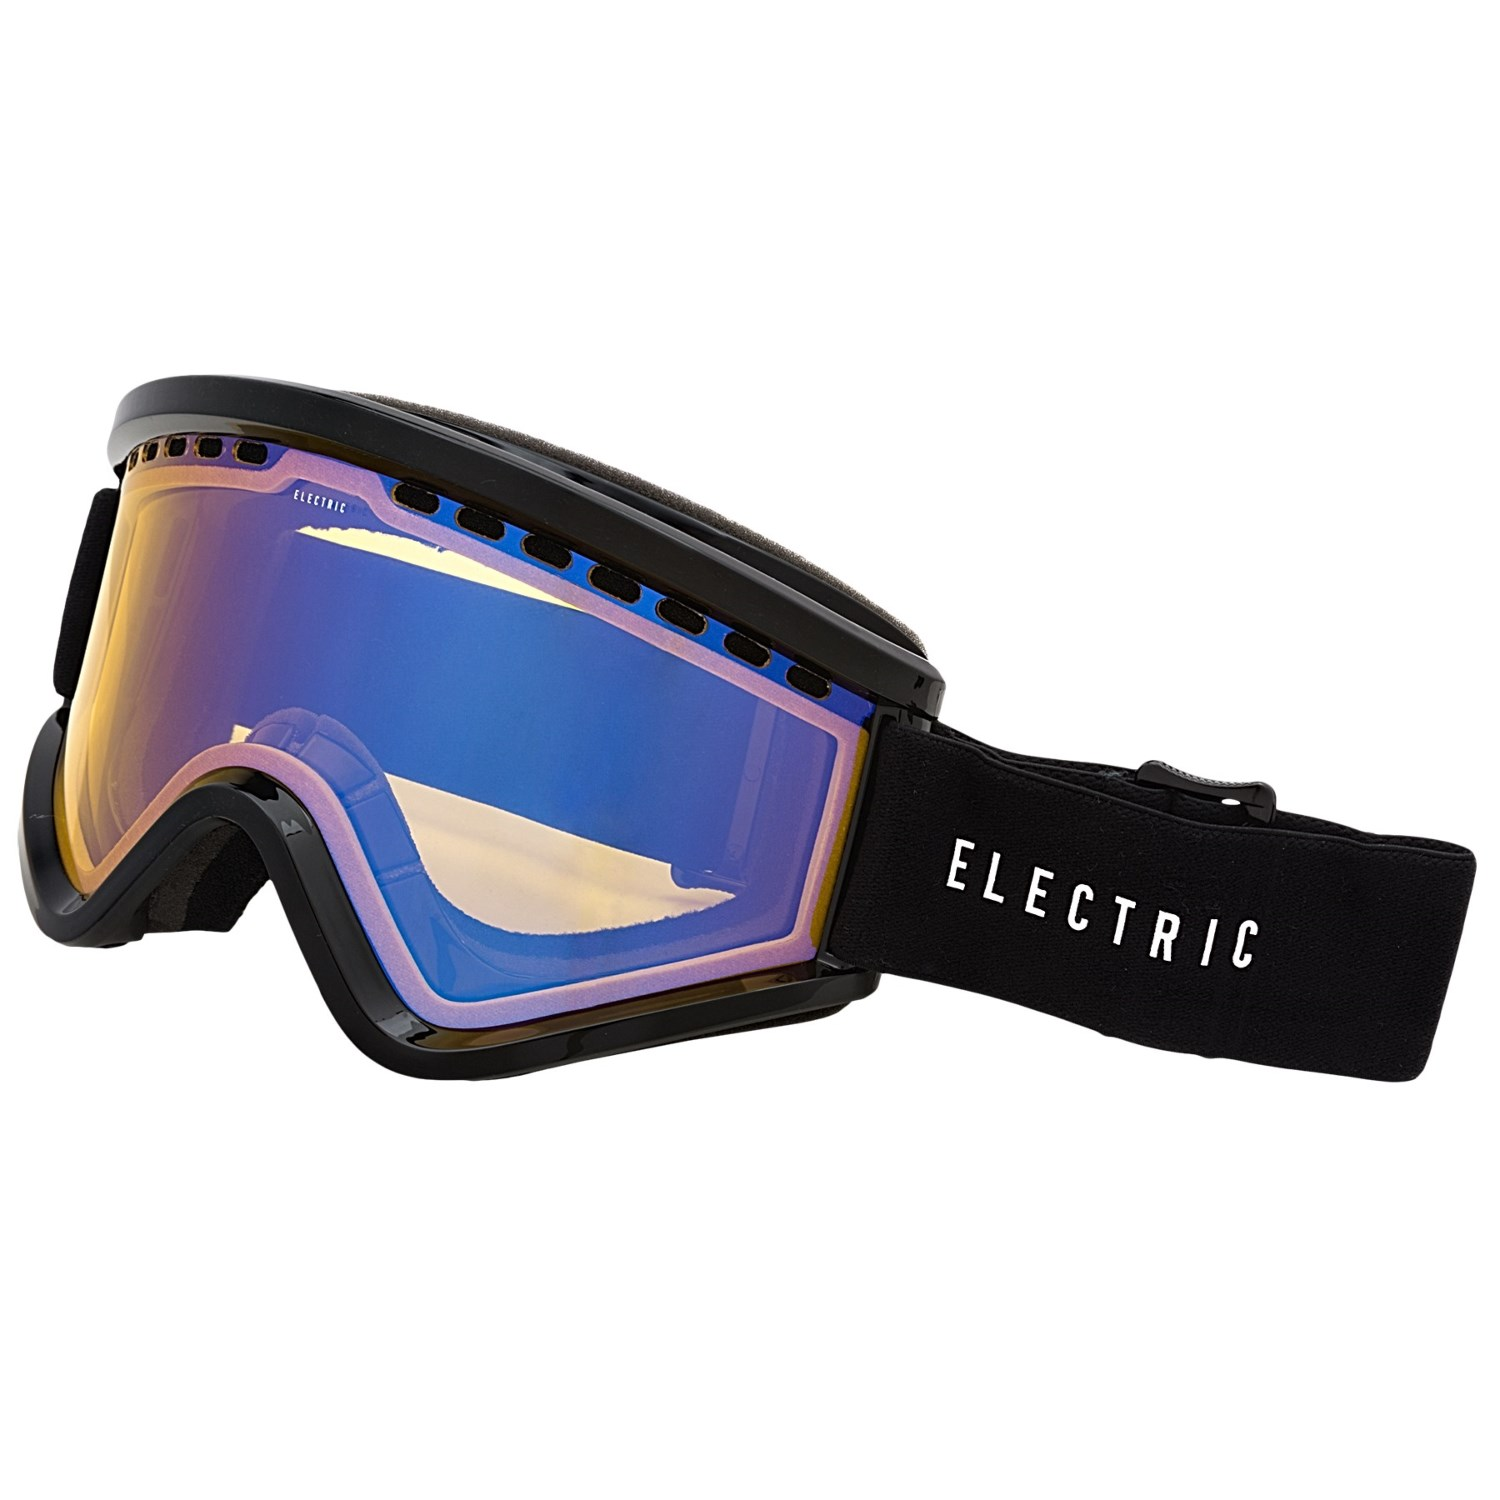 electric egv ski goggles extra lens save 50